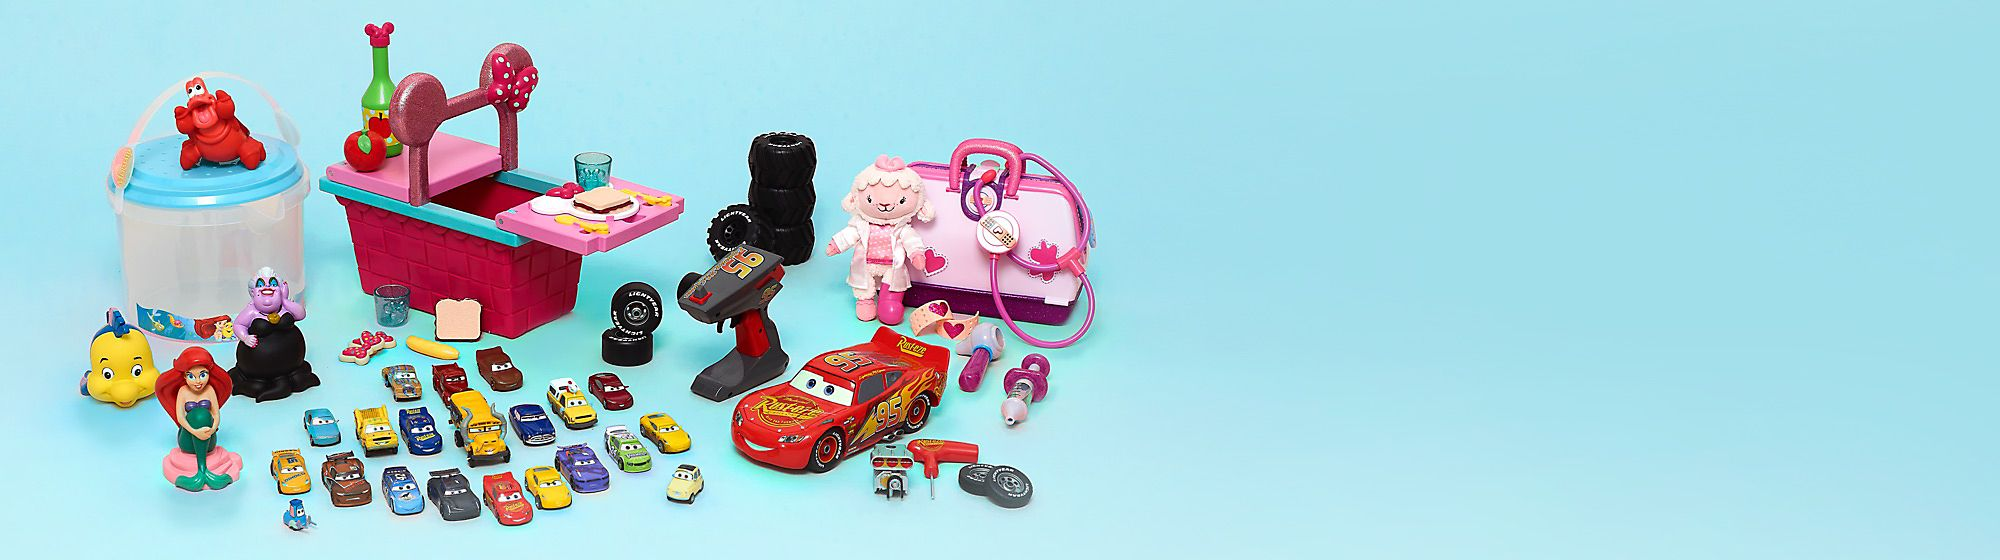 20% off selected Toys